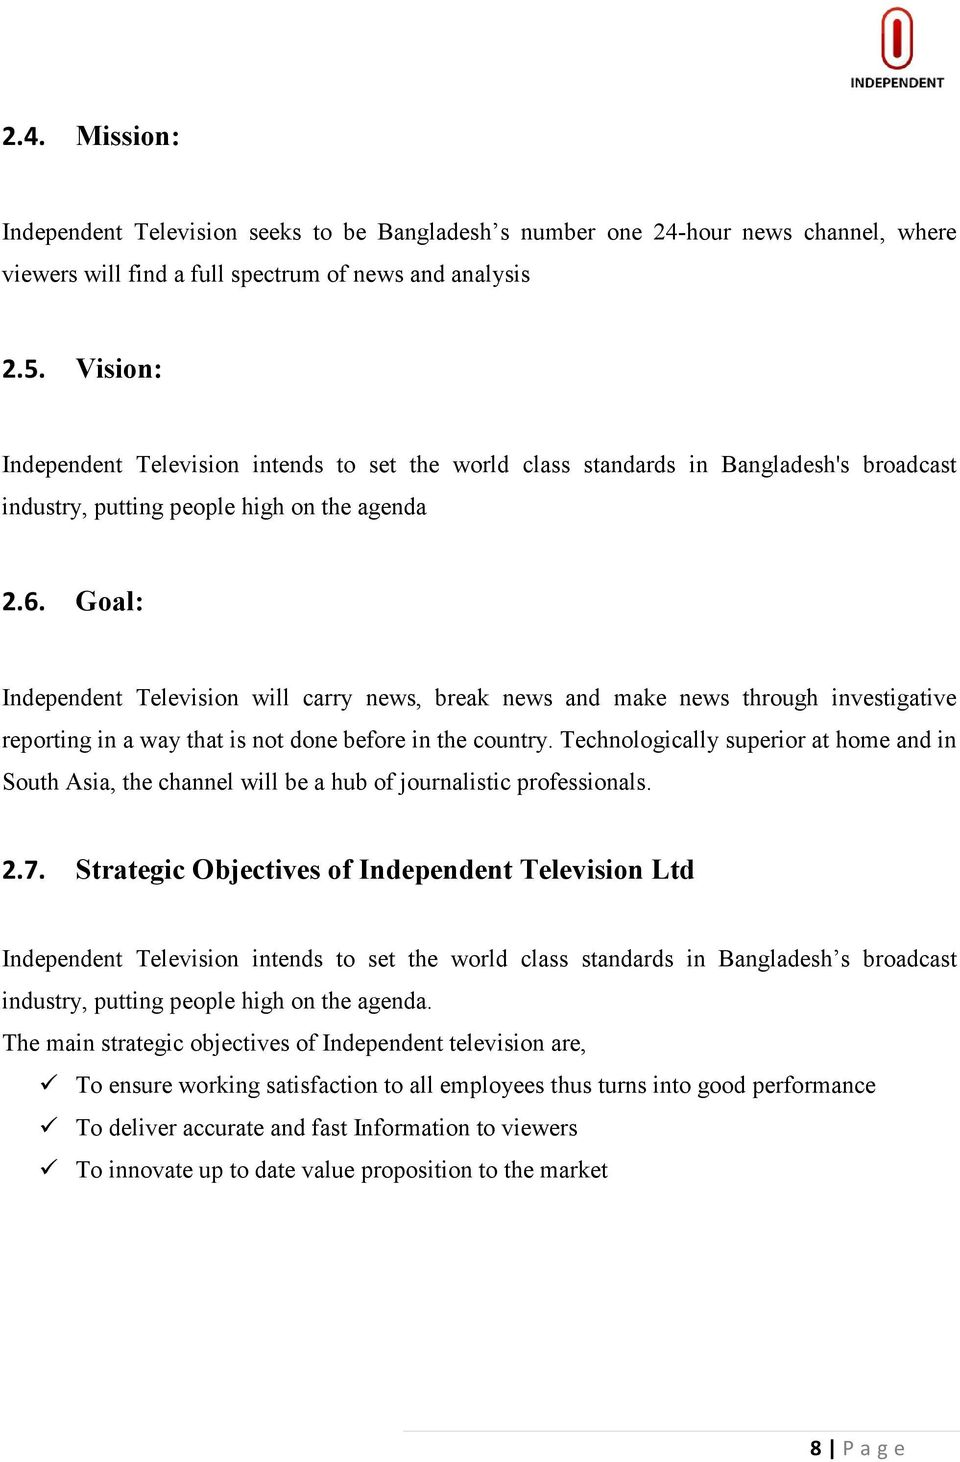 internship report on hr practices in View essay - internship-report-on-hr-policies-and-practices-in-agrani-bank-ltd from business a 114 at american intl university internship report on hr policies and practices in agrani bank.